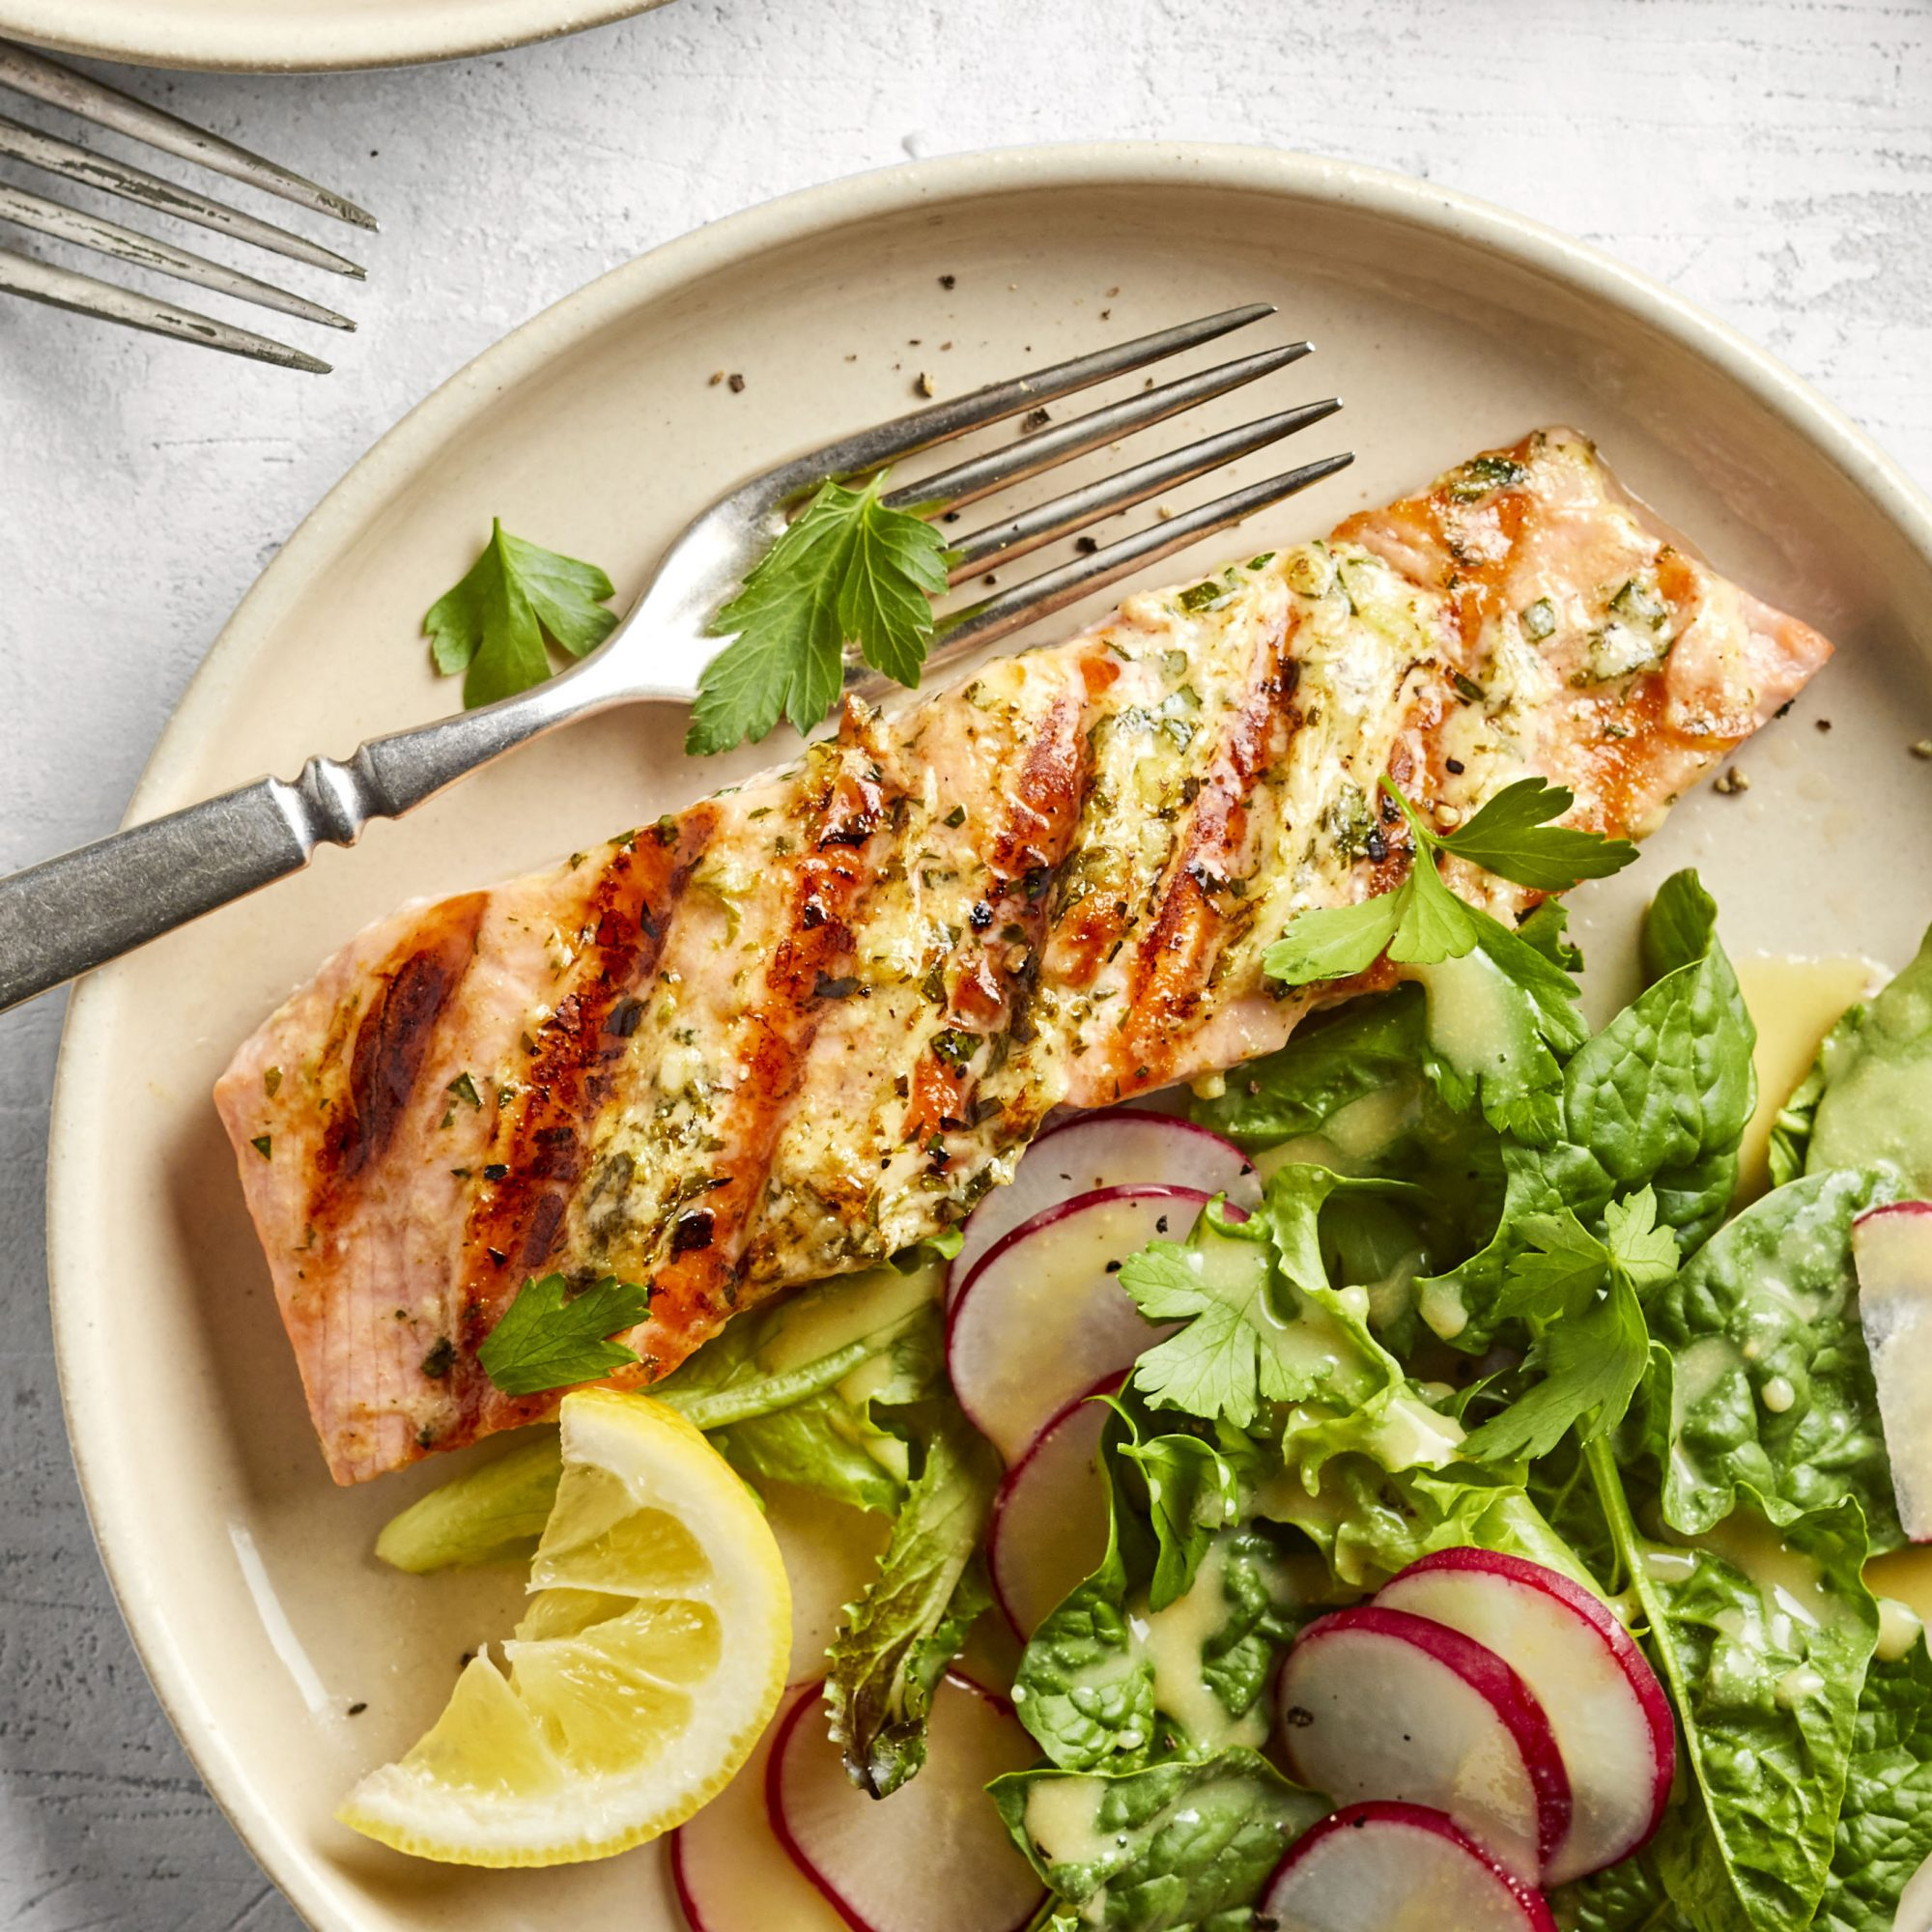 grilled salmon with salad with radishes